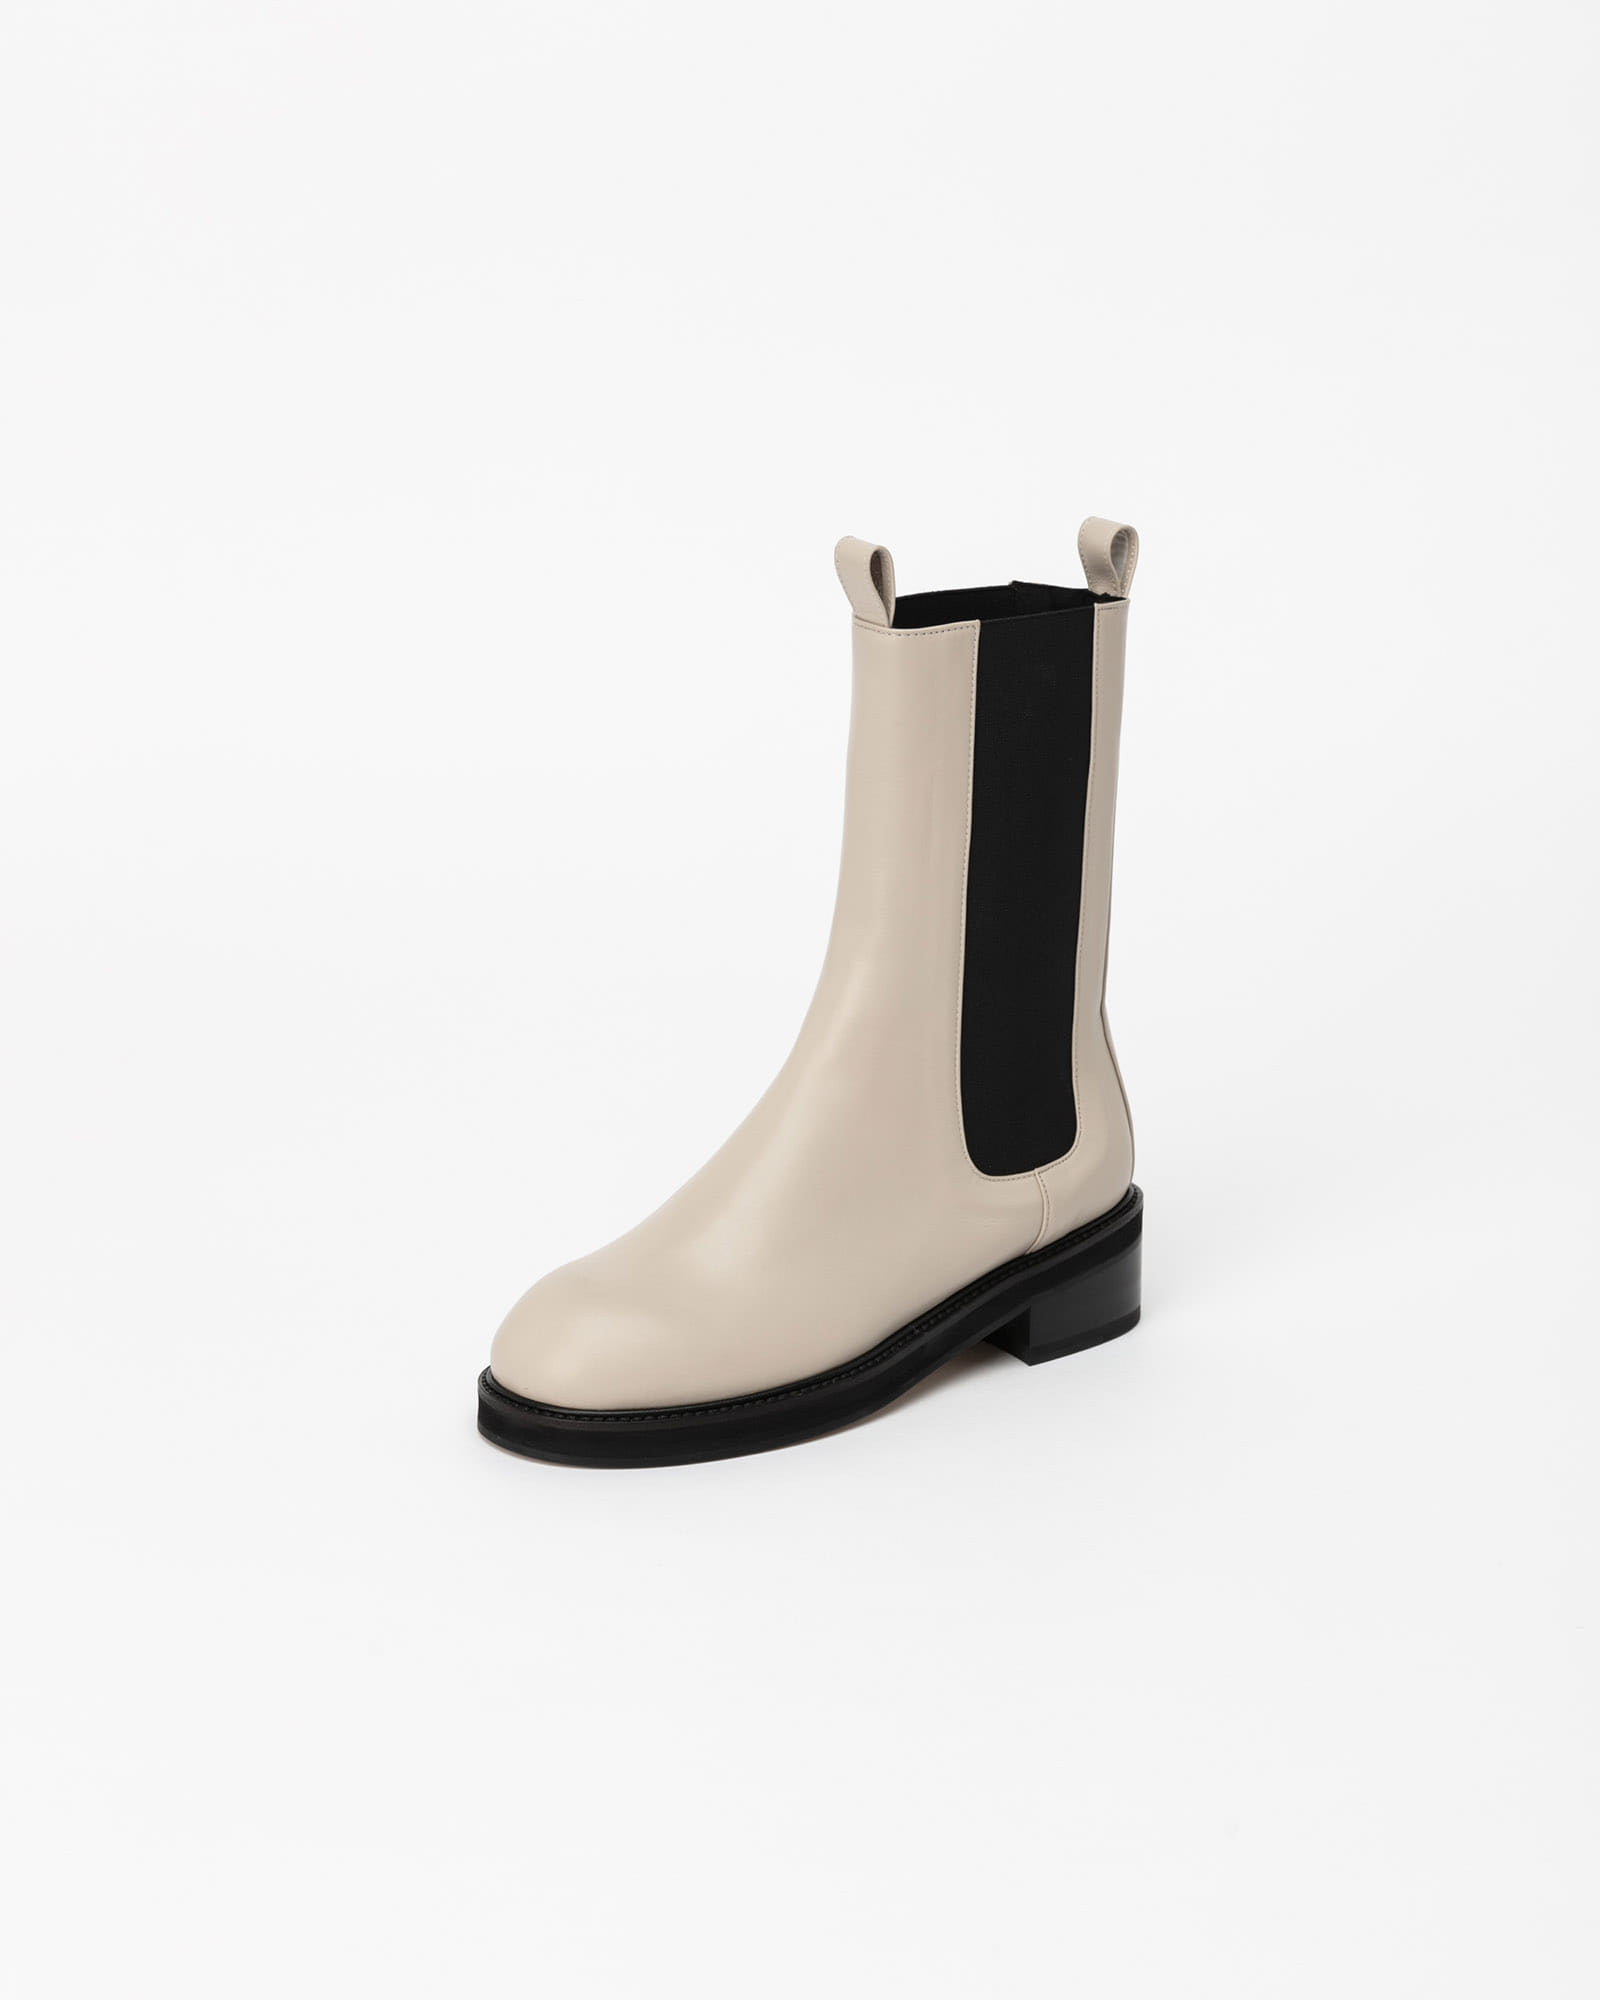 Signific High-rise Chelsea Boots in Ecru Ivory